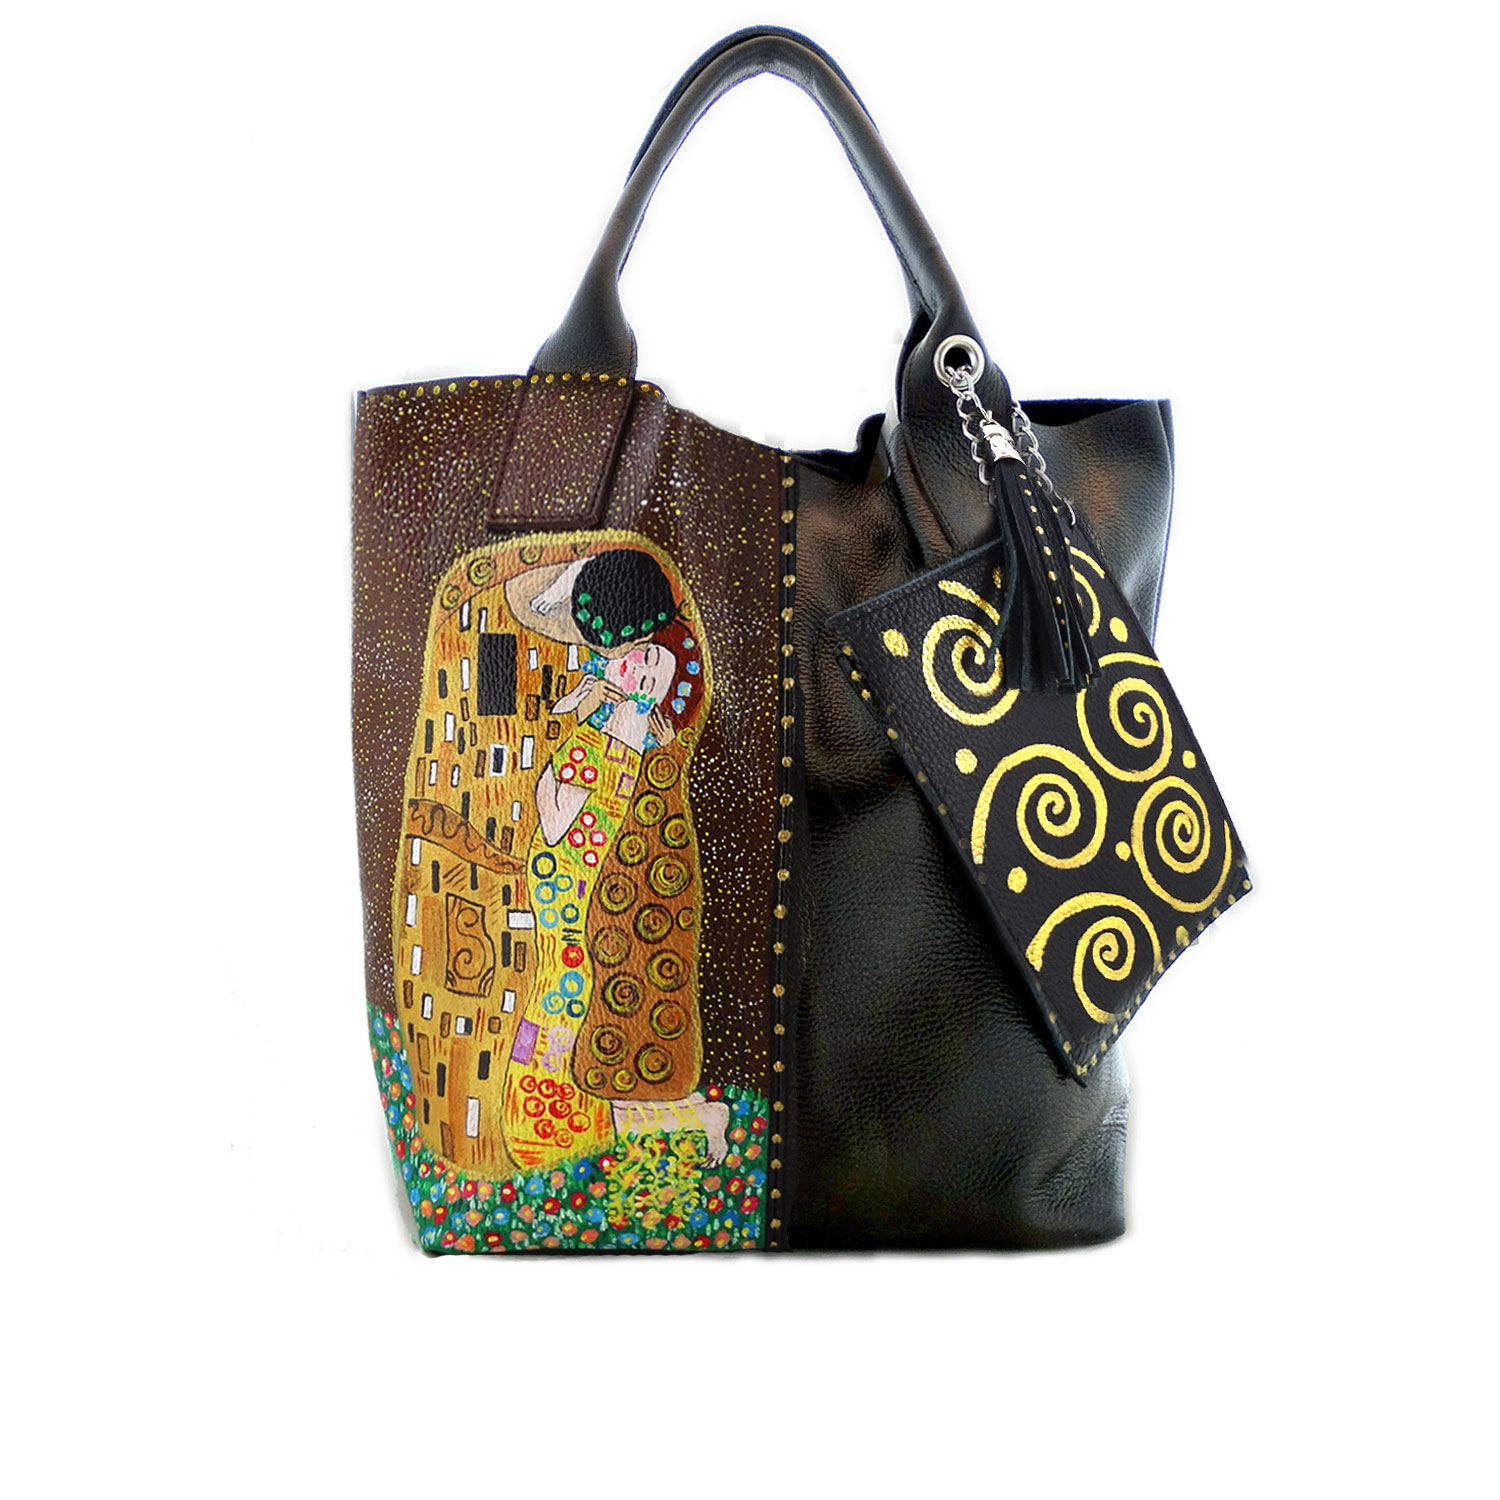 Handpainted bag - The Kiss by Klimt